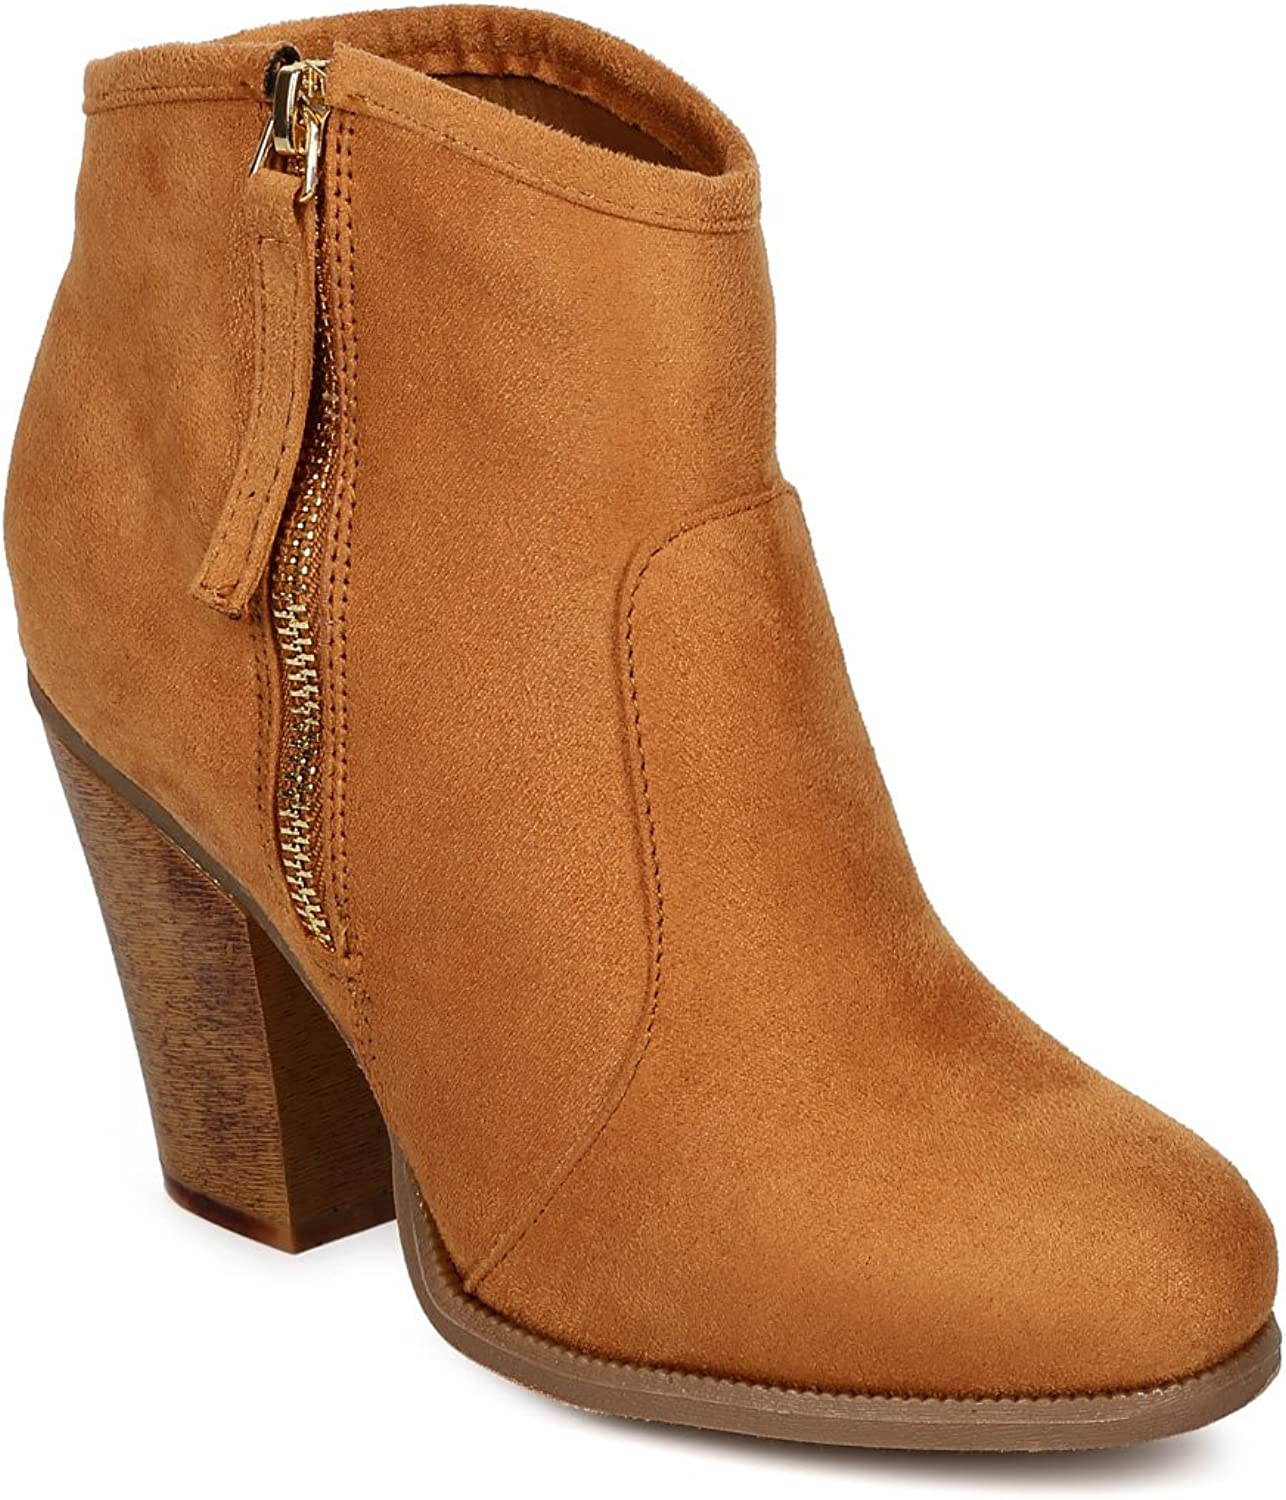 Liliana CK46 Women Suede Round Toe Chunky Heel Ankle Riding Bootie - Tan